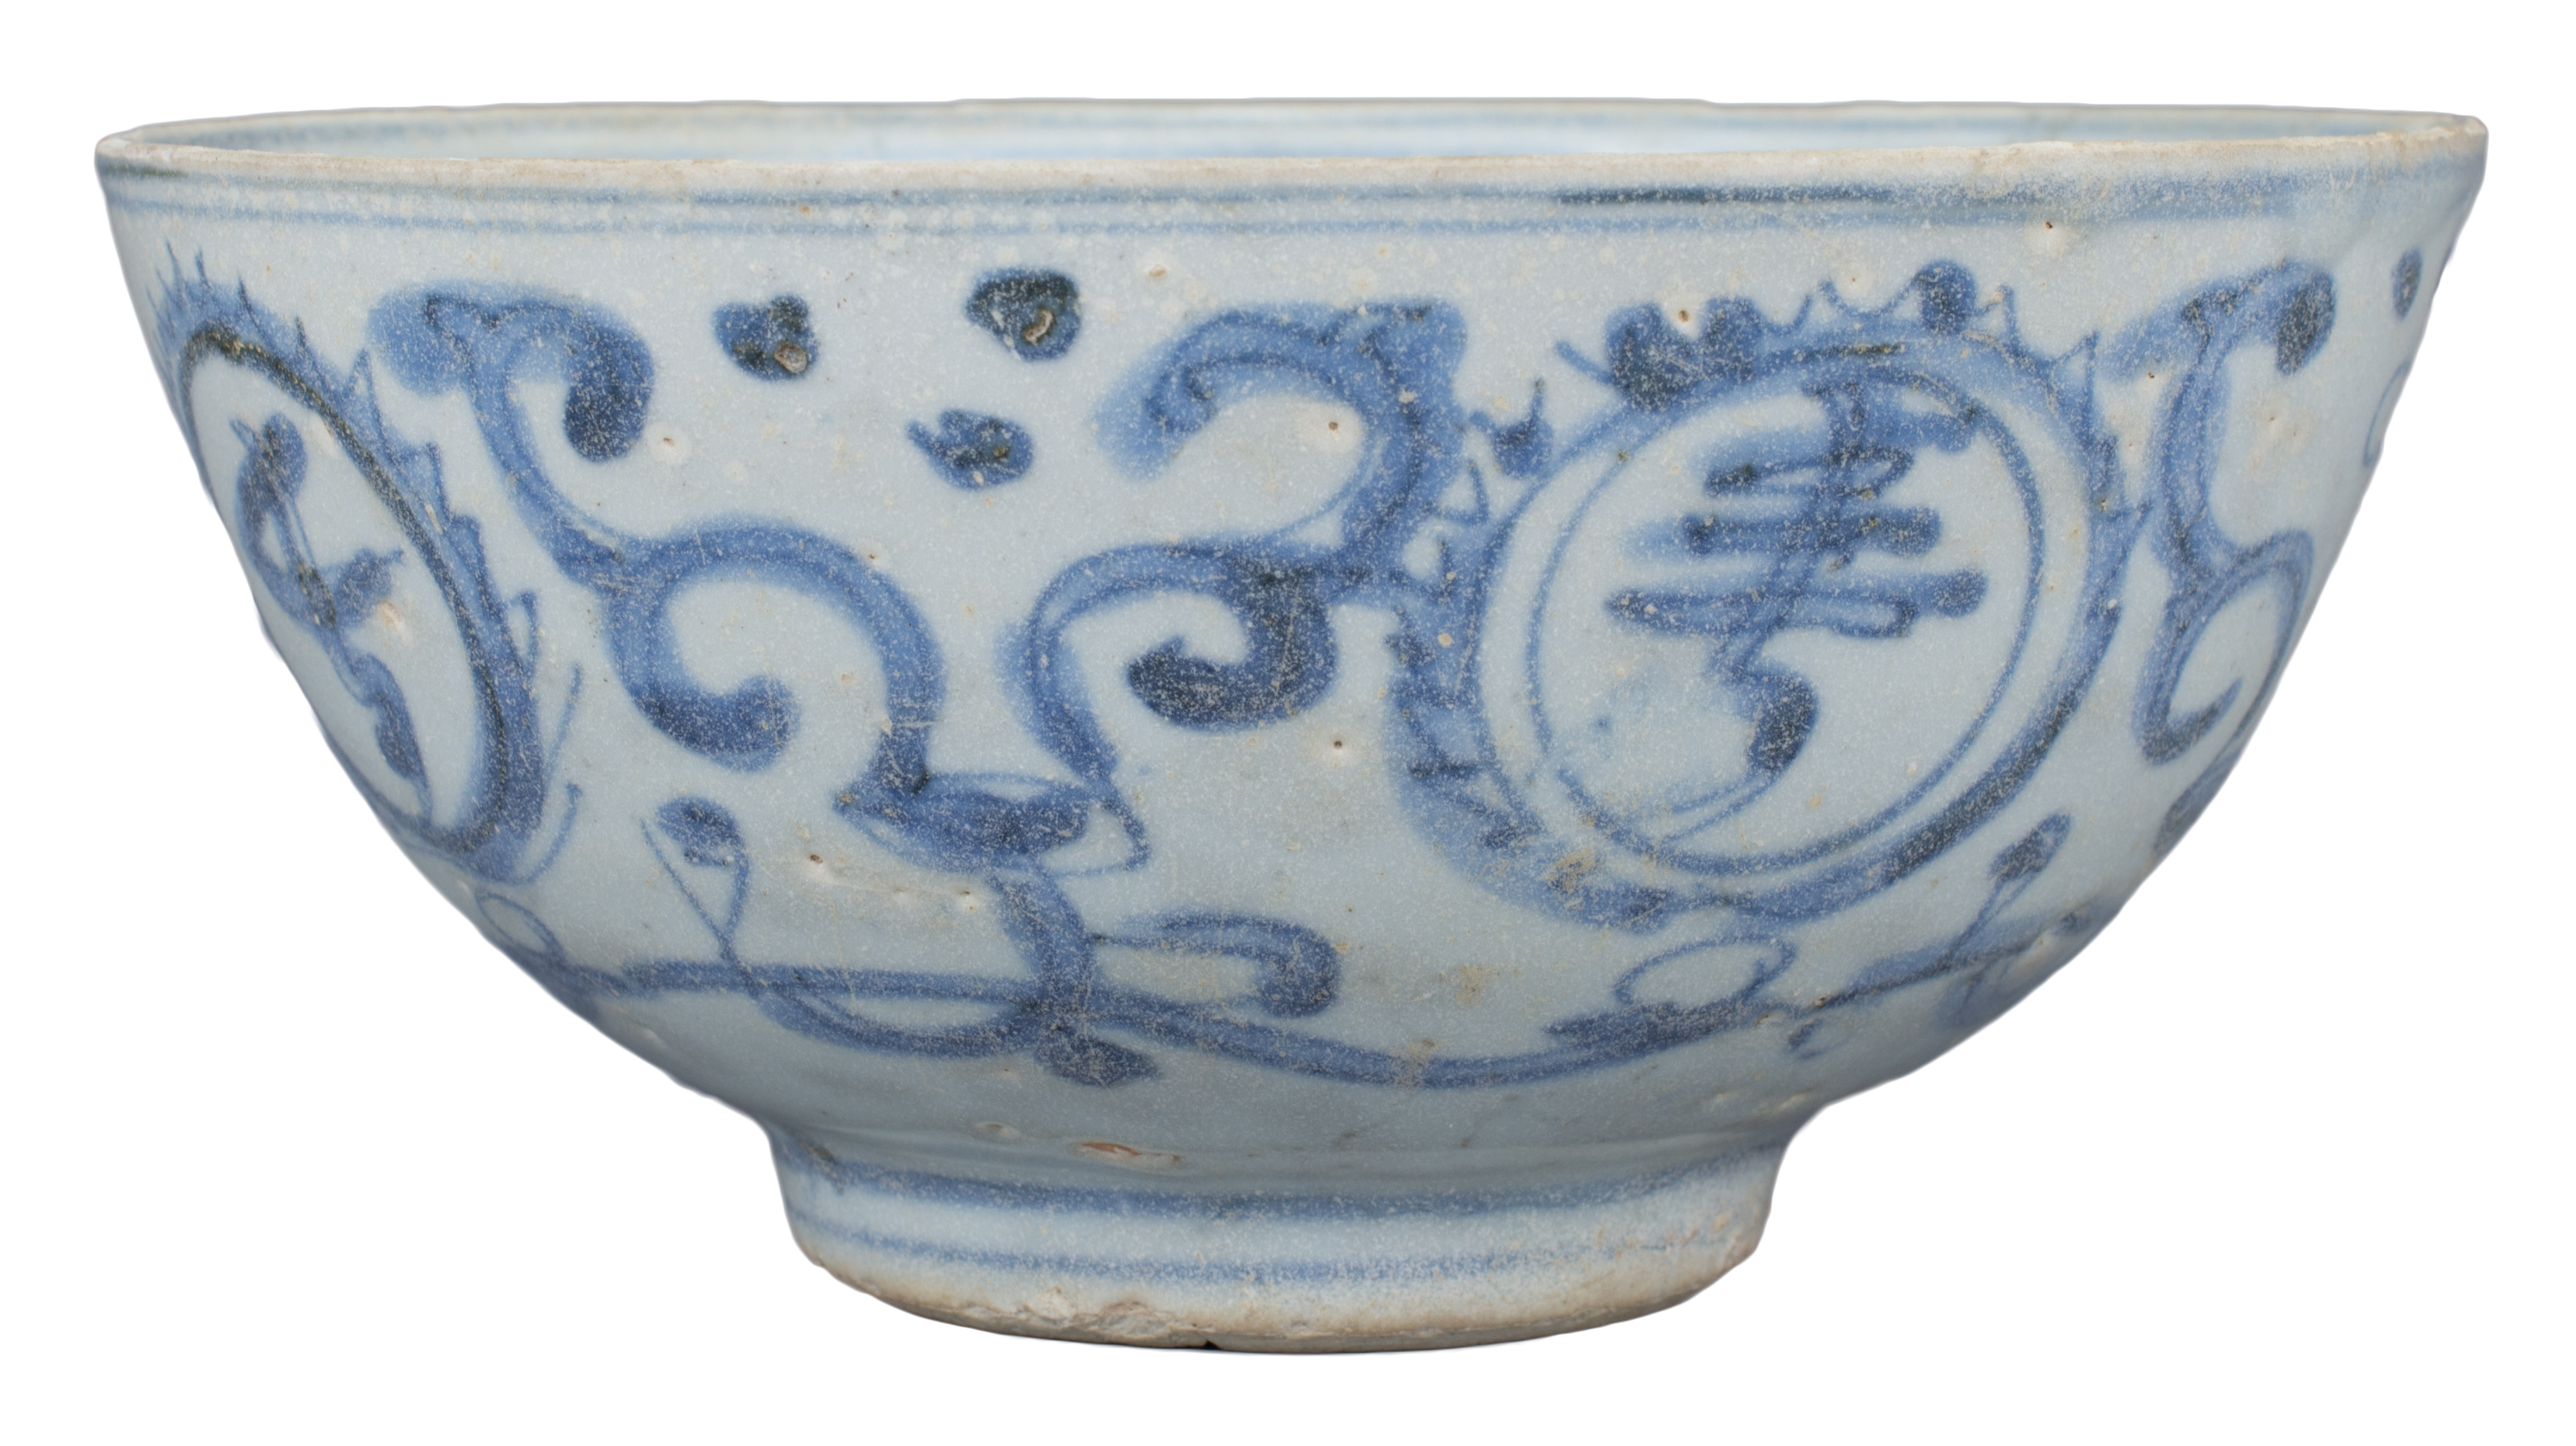 Lot 6 - A Rare Chinese Ming Dynasty Blue & White Porcelain Bowl